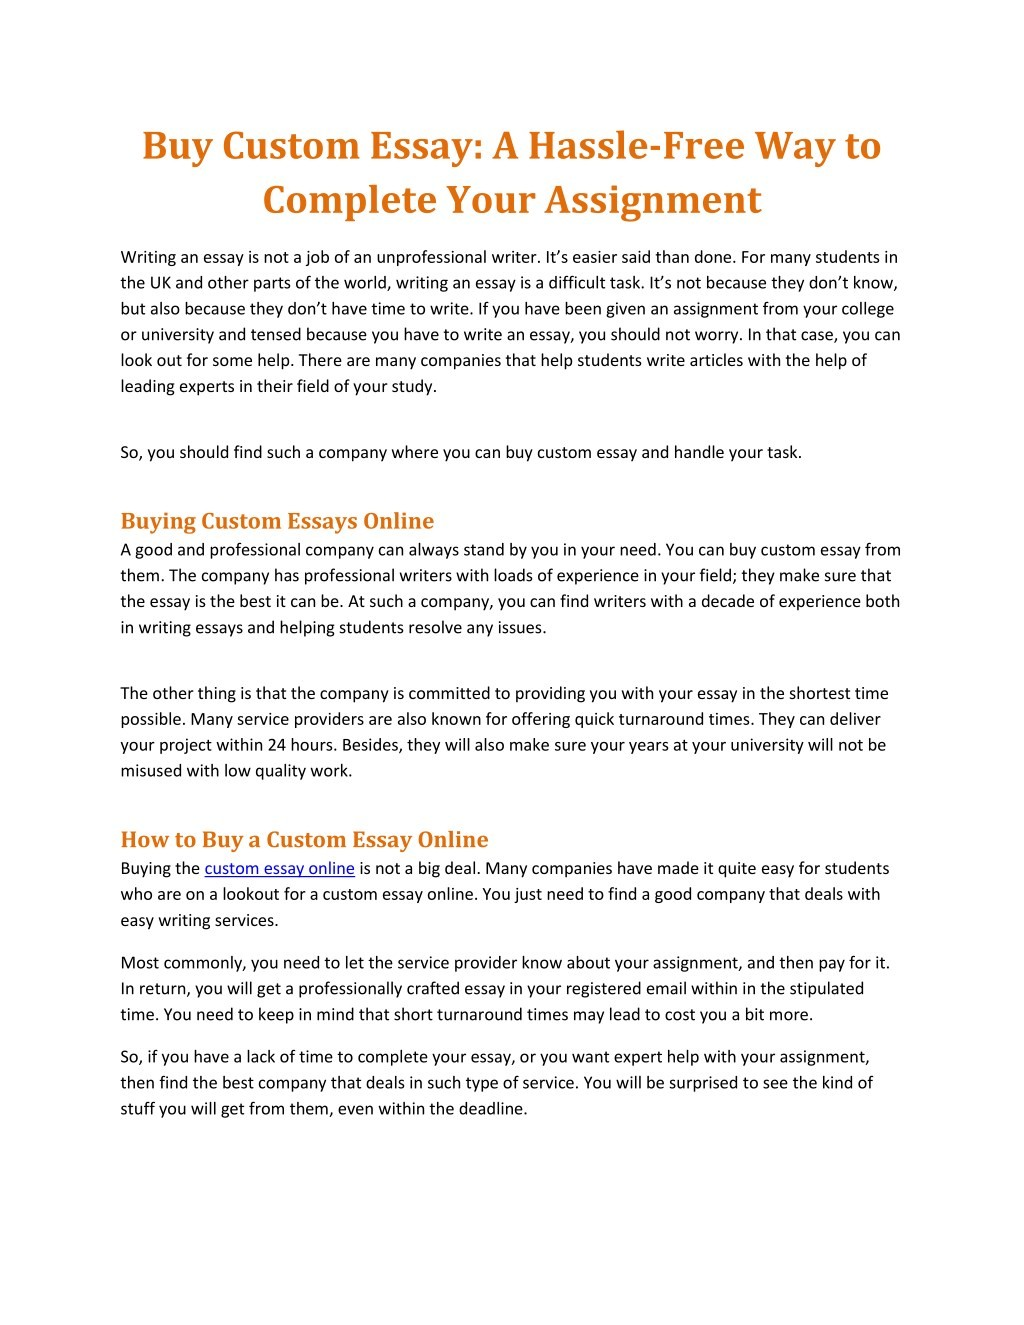 001 Buy Custom Essay Hassle Free Way To Complete L Beautiful Written Cheap Writing Services Large